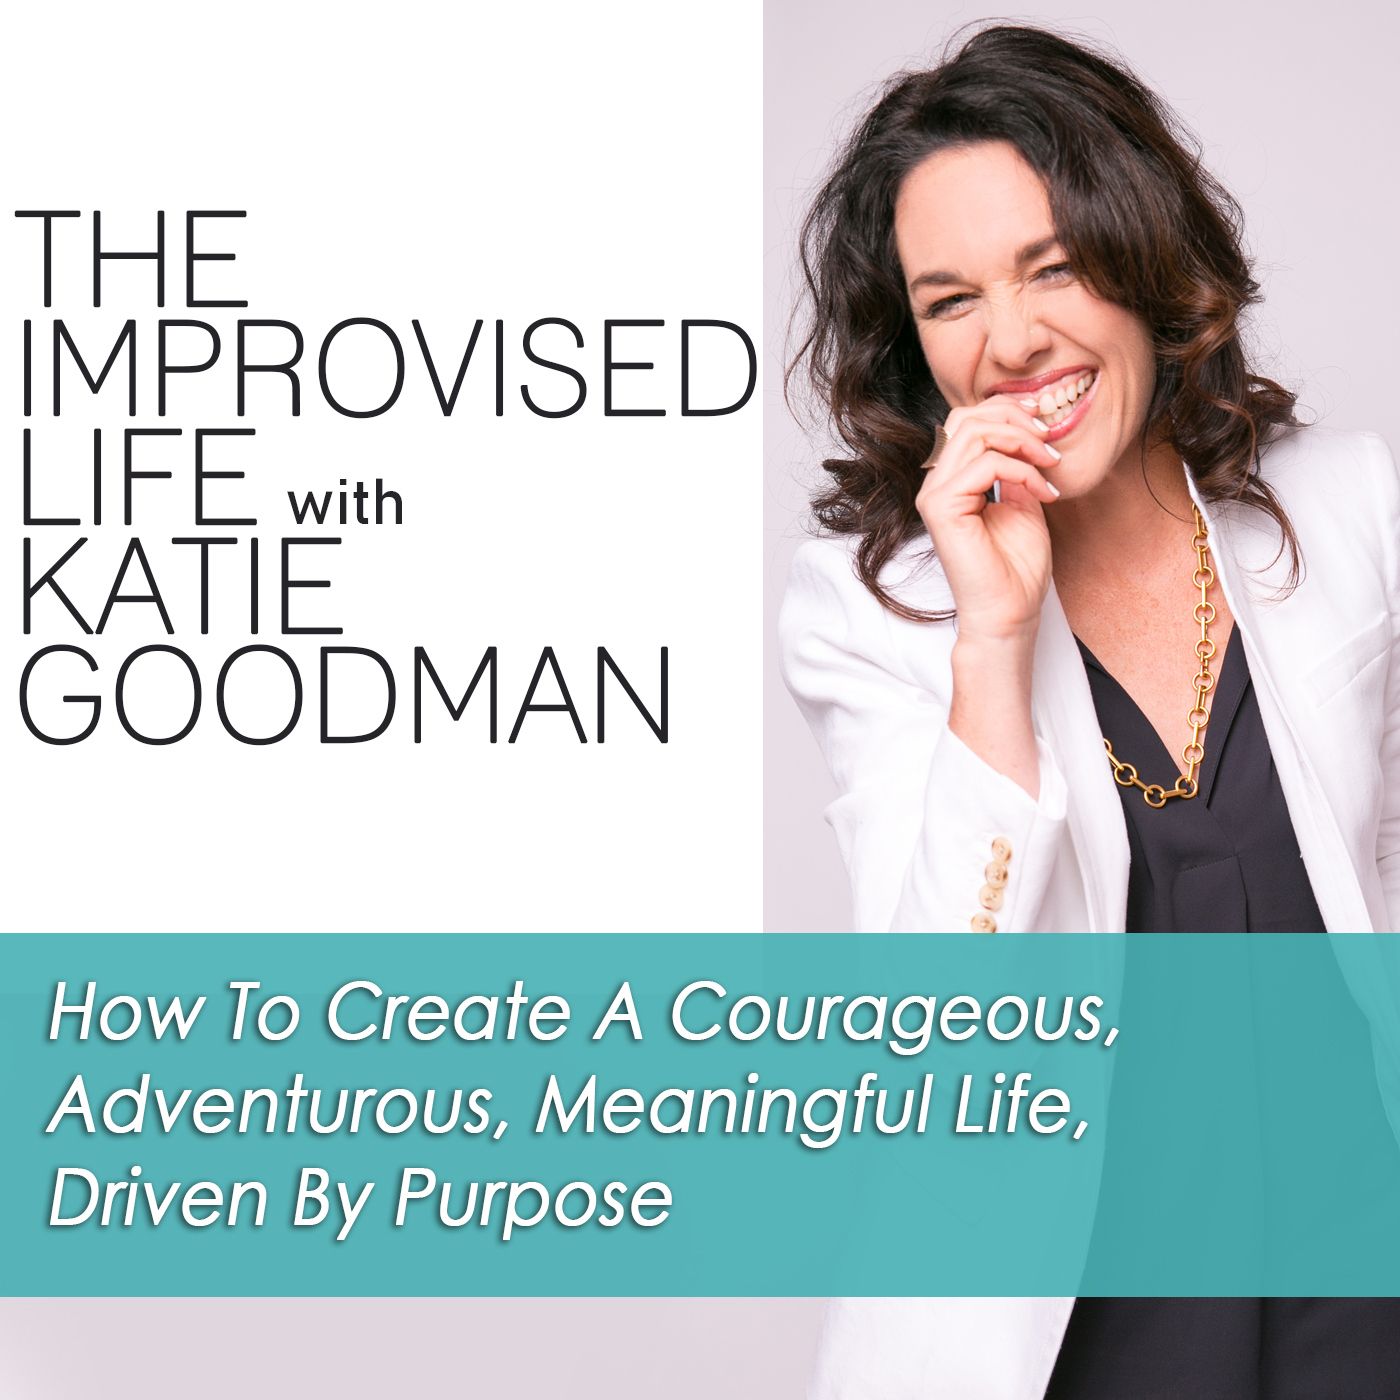 Katie Goodman, funny speaker based in NYC specializing in women's leadership, and innovation.